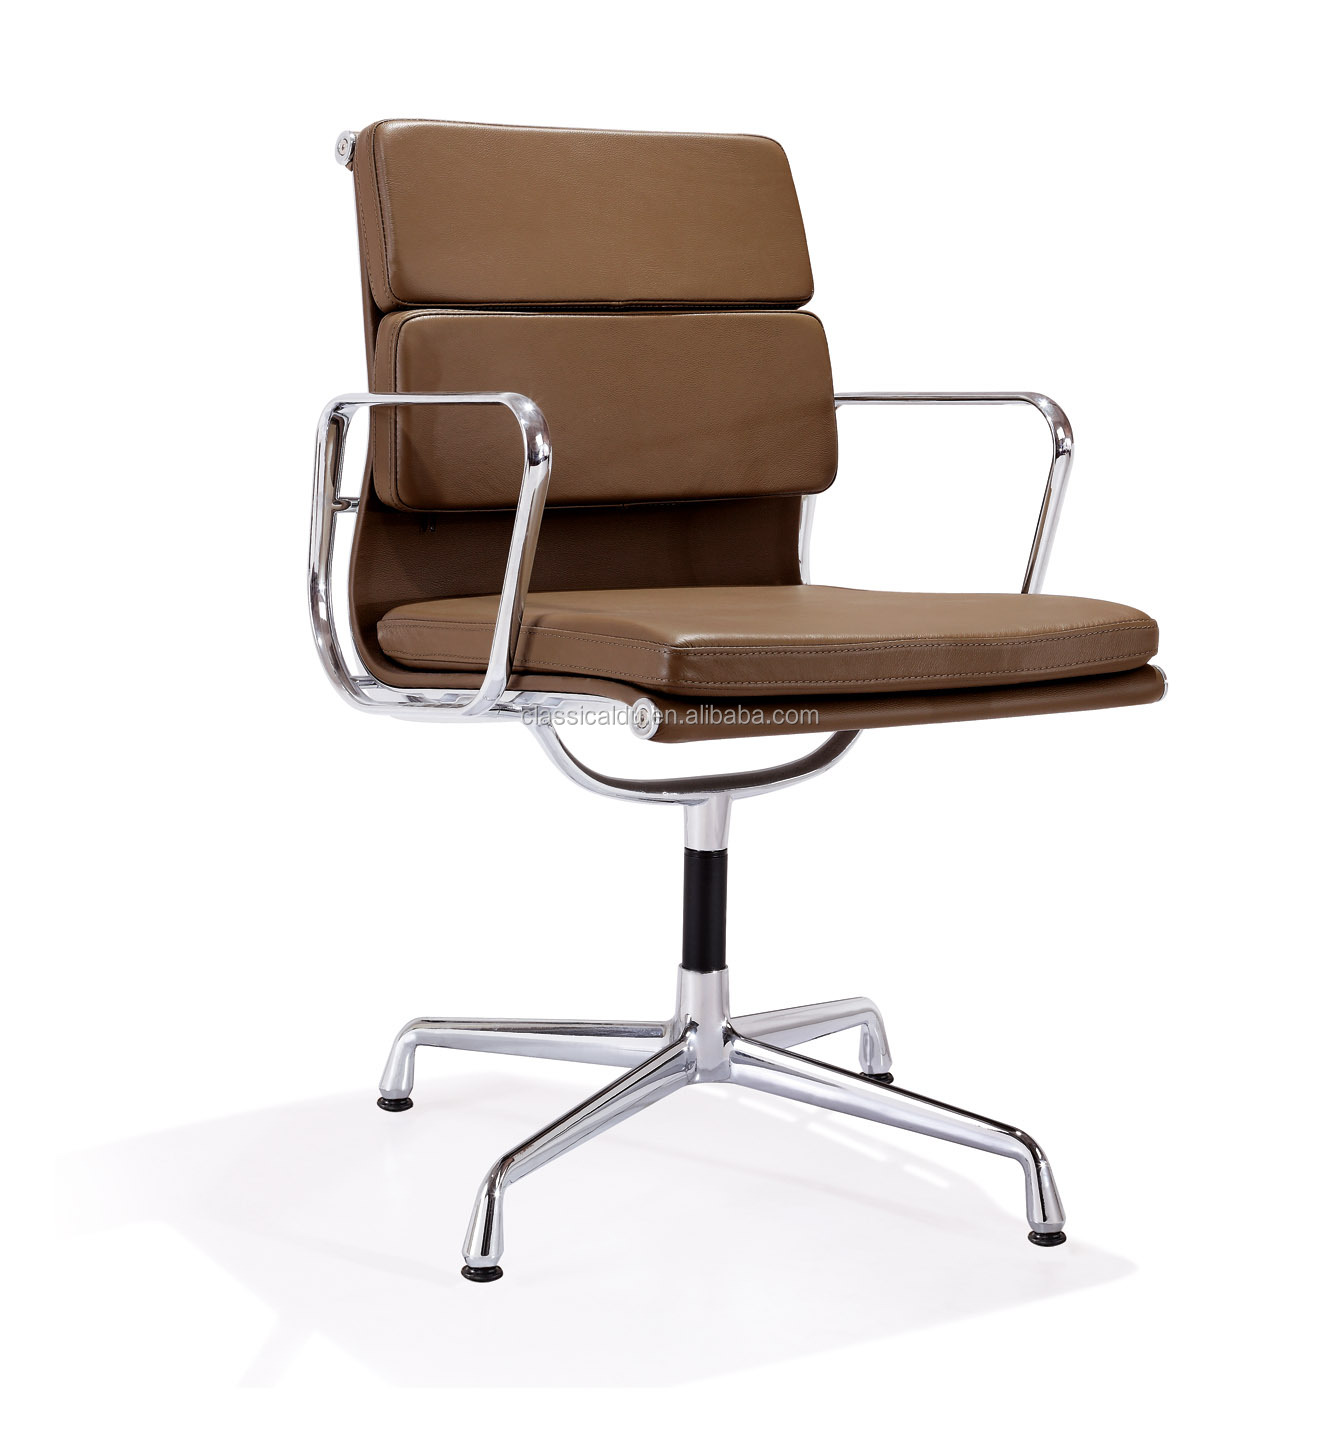 Office Chair Base German Office Chairs Office Chair Gas Lift Buy